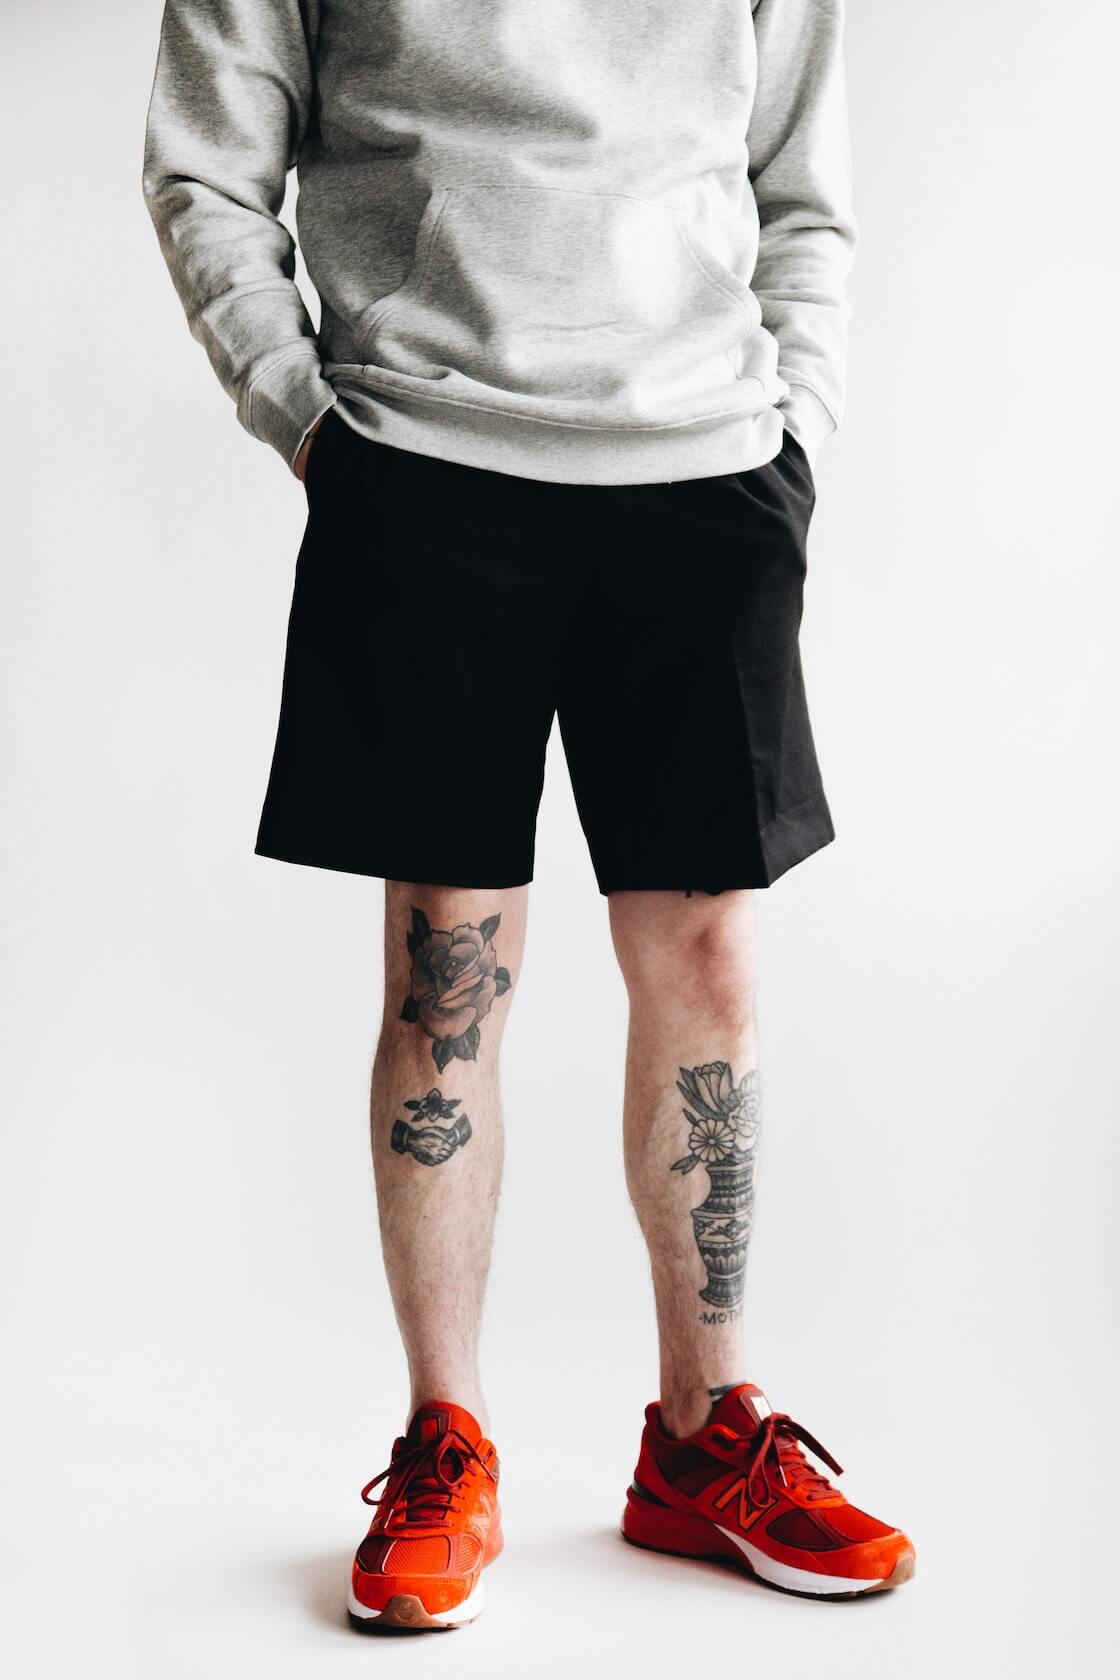 harmony paris sany velour sweatshirt, pavel trouser shorts and new balance m990 shoes on body